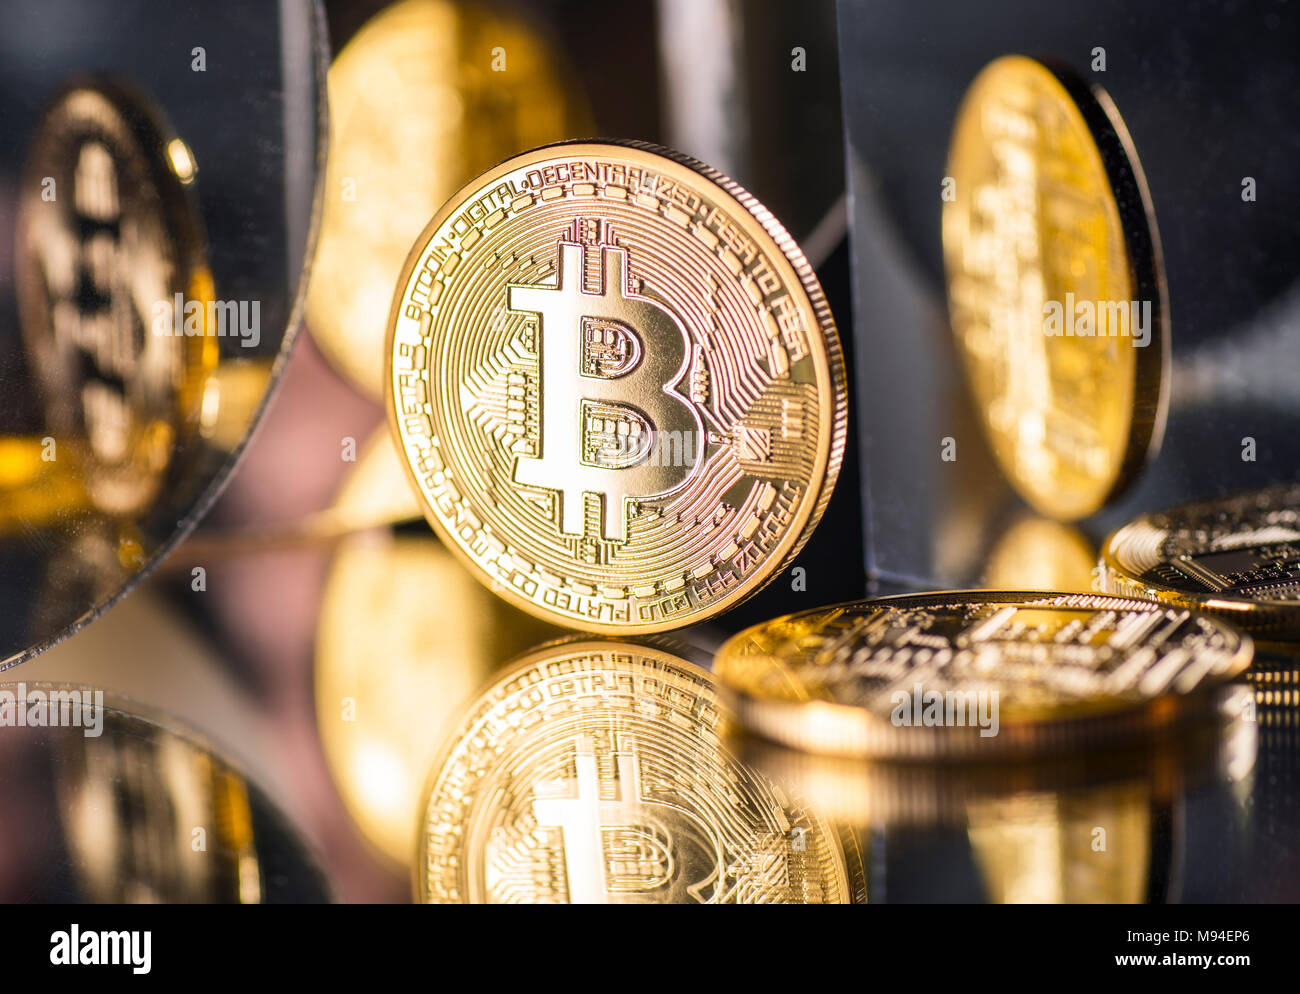 Coin of the crypto-currency Bitcoin with several reflections - Stock Image